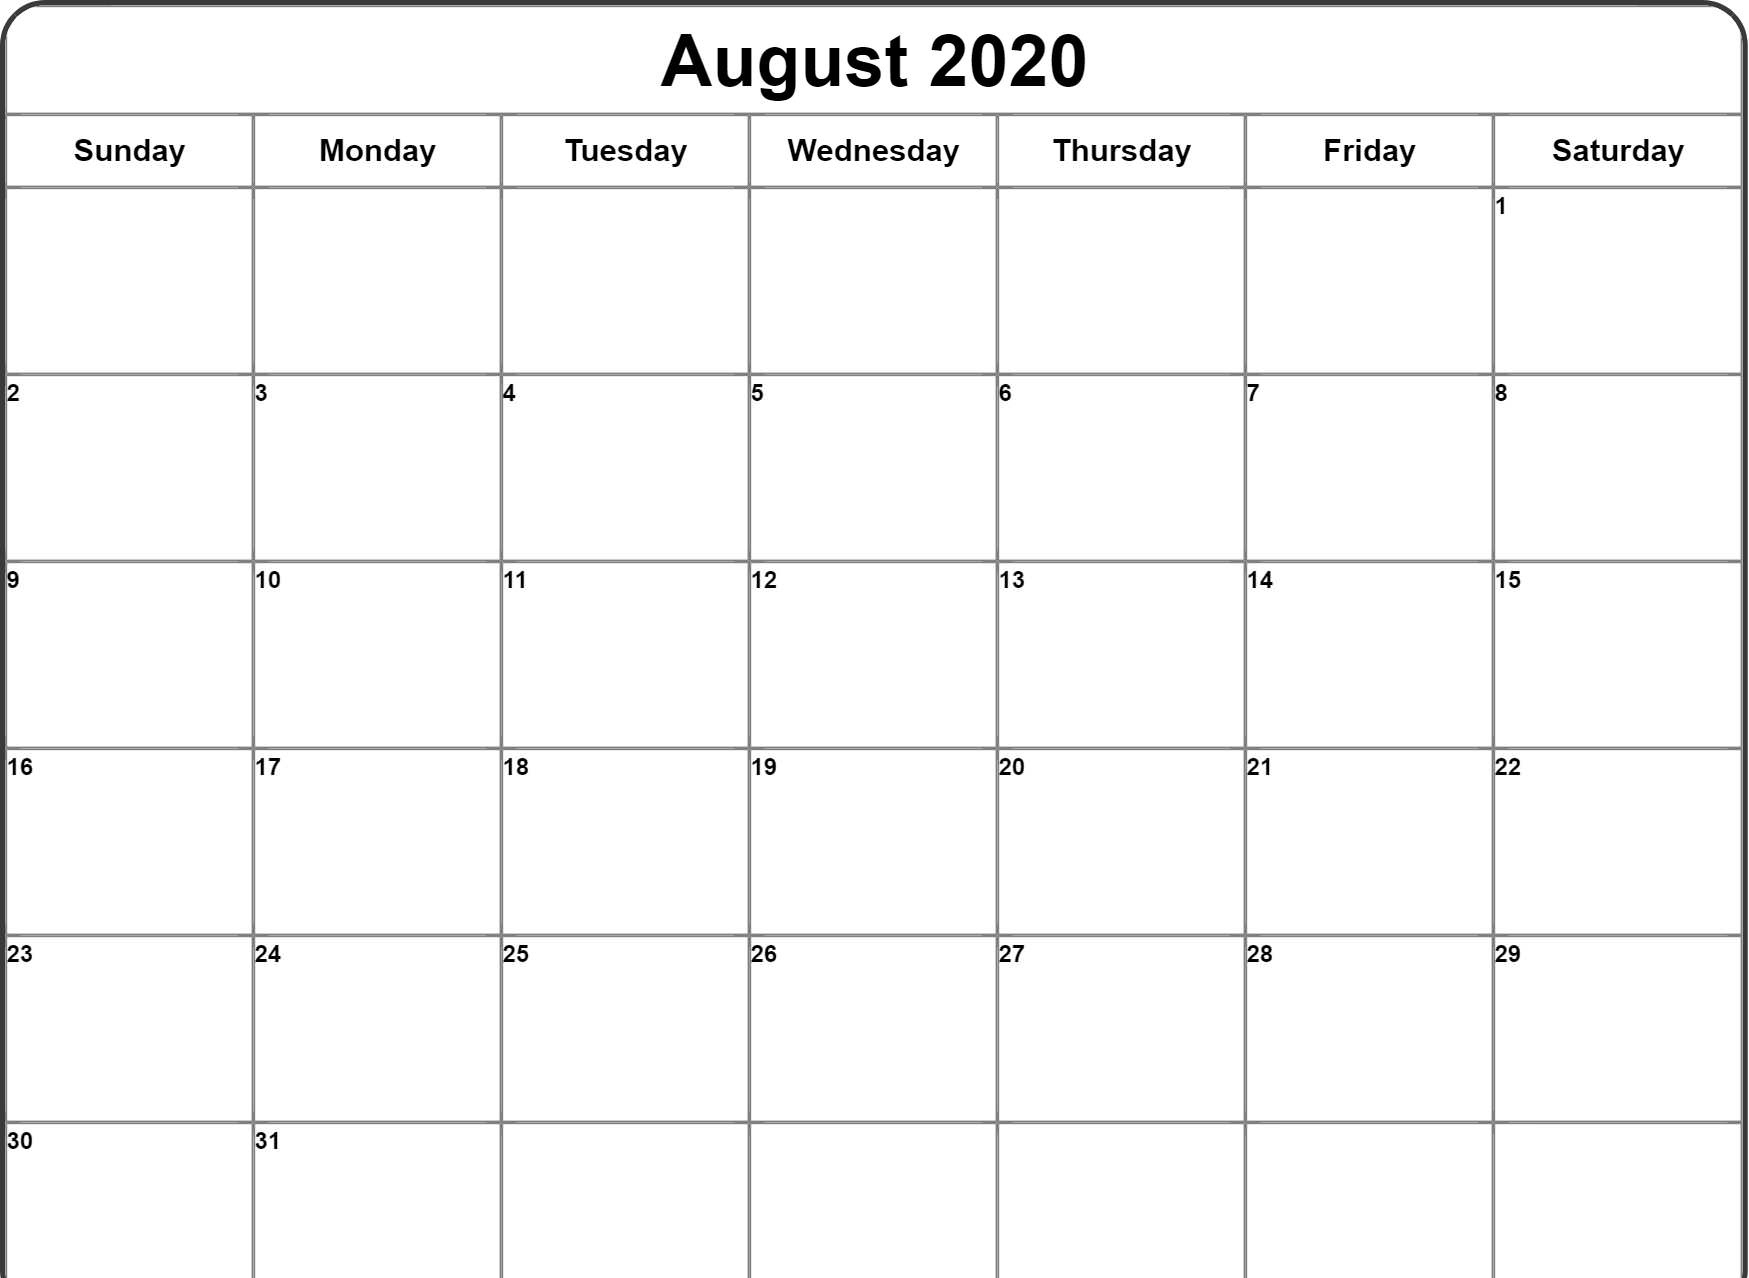 Blank Template Calendar for August 2020 Holidays